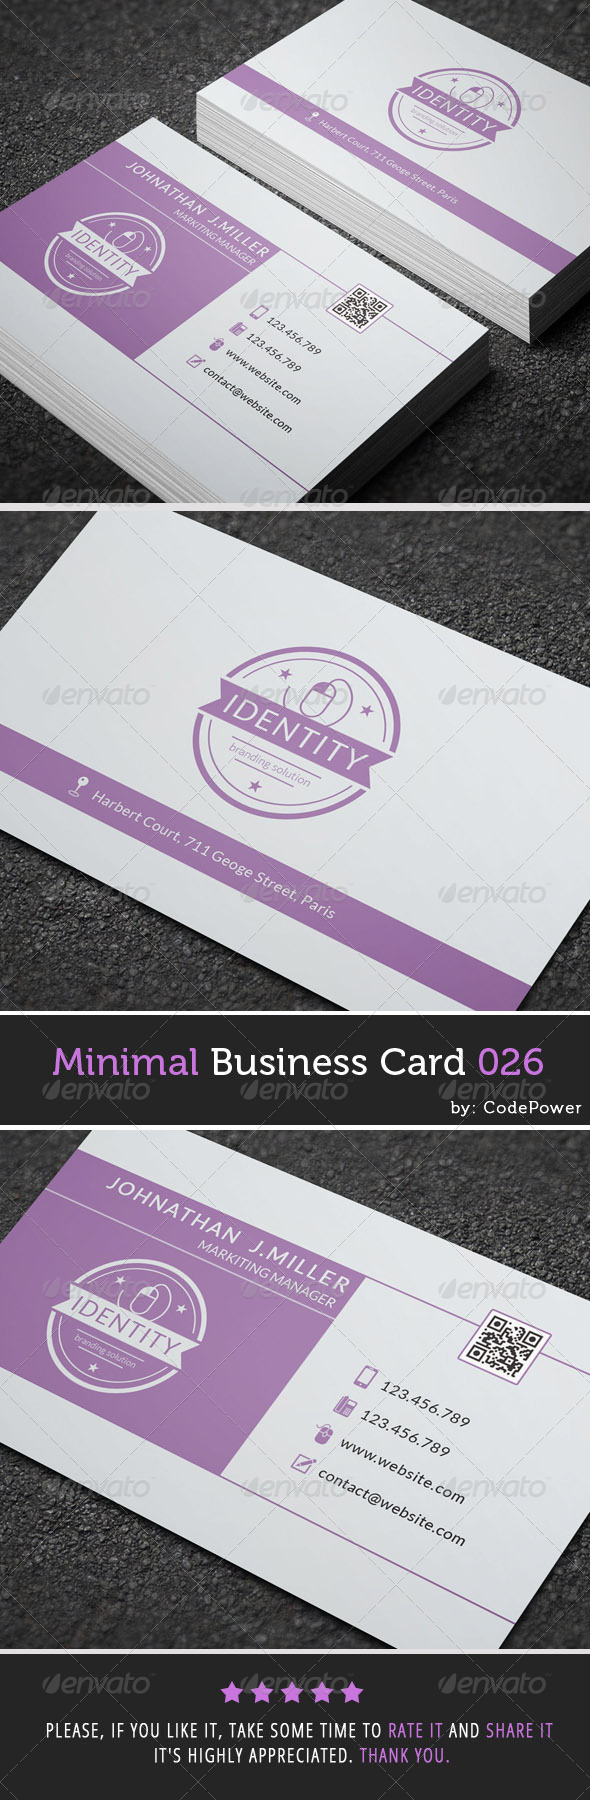 GraphicRiver Minimal Business Card 026 7645298